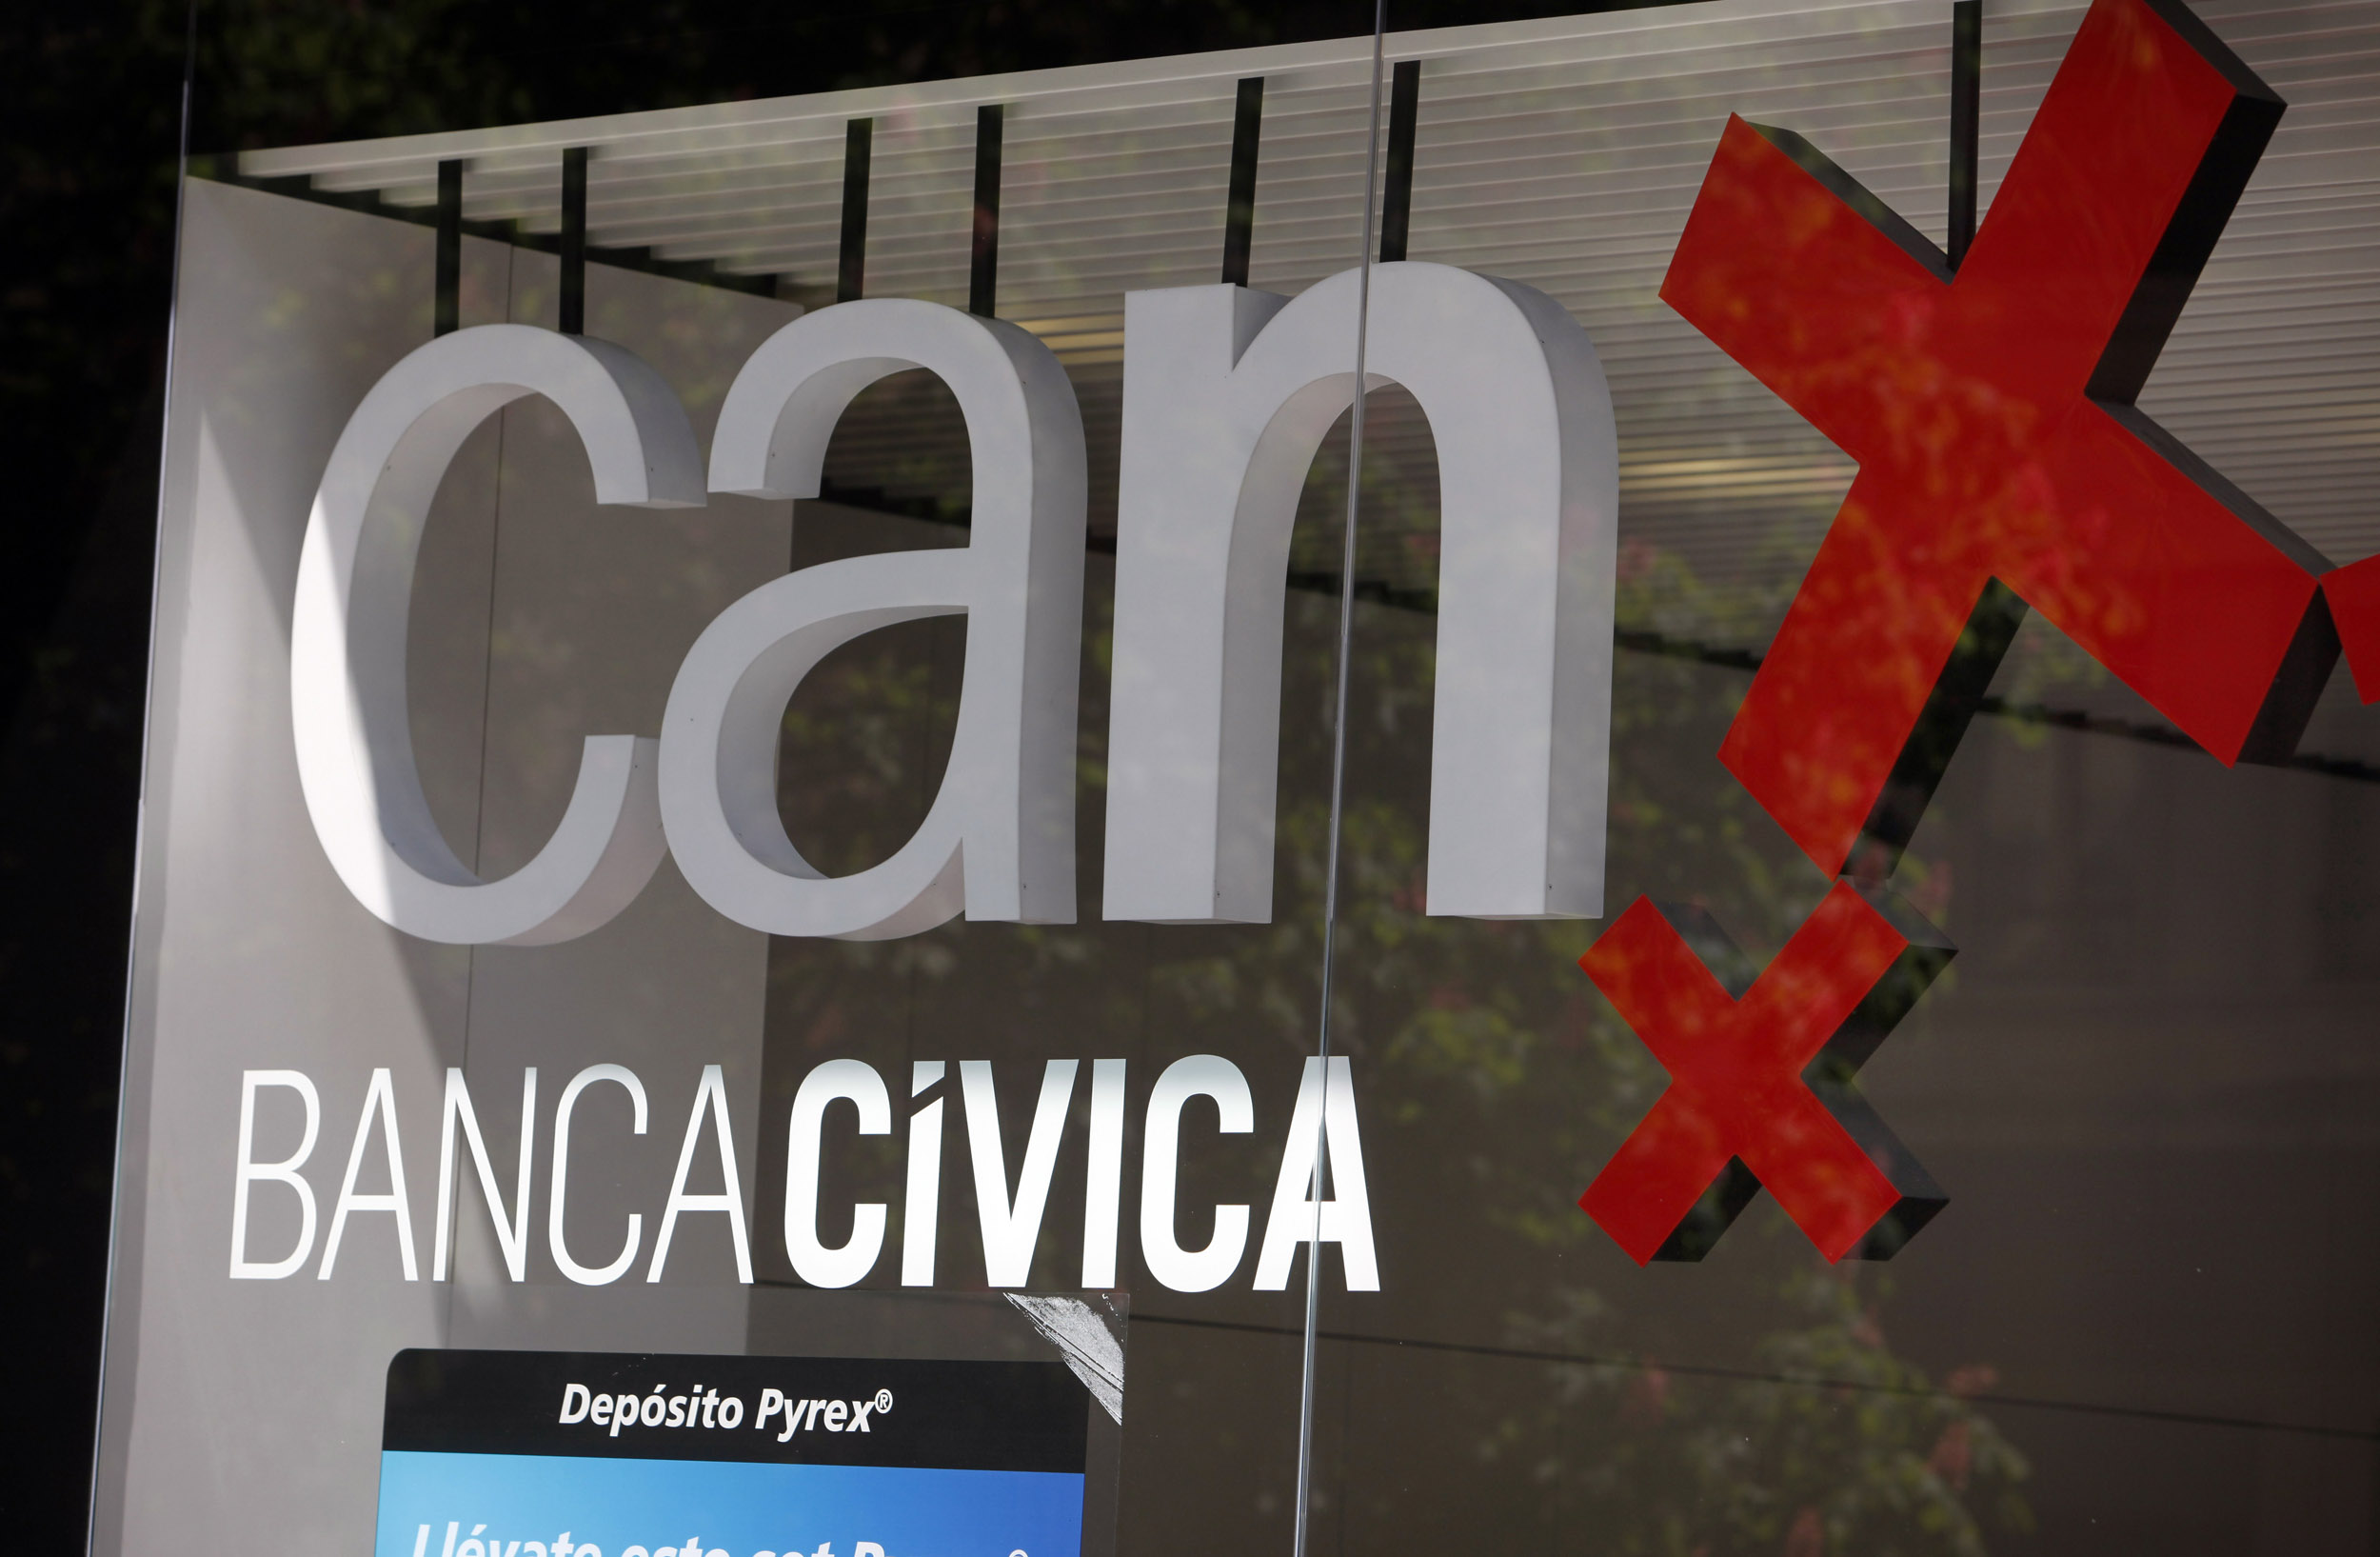 Spanje, Spain, Pamplona, bank, Can Banca Civica, logo